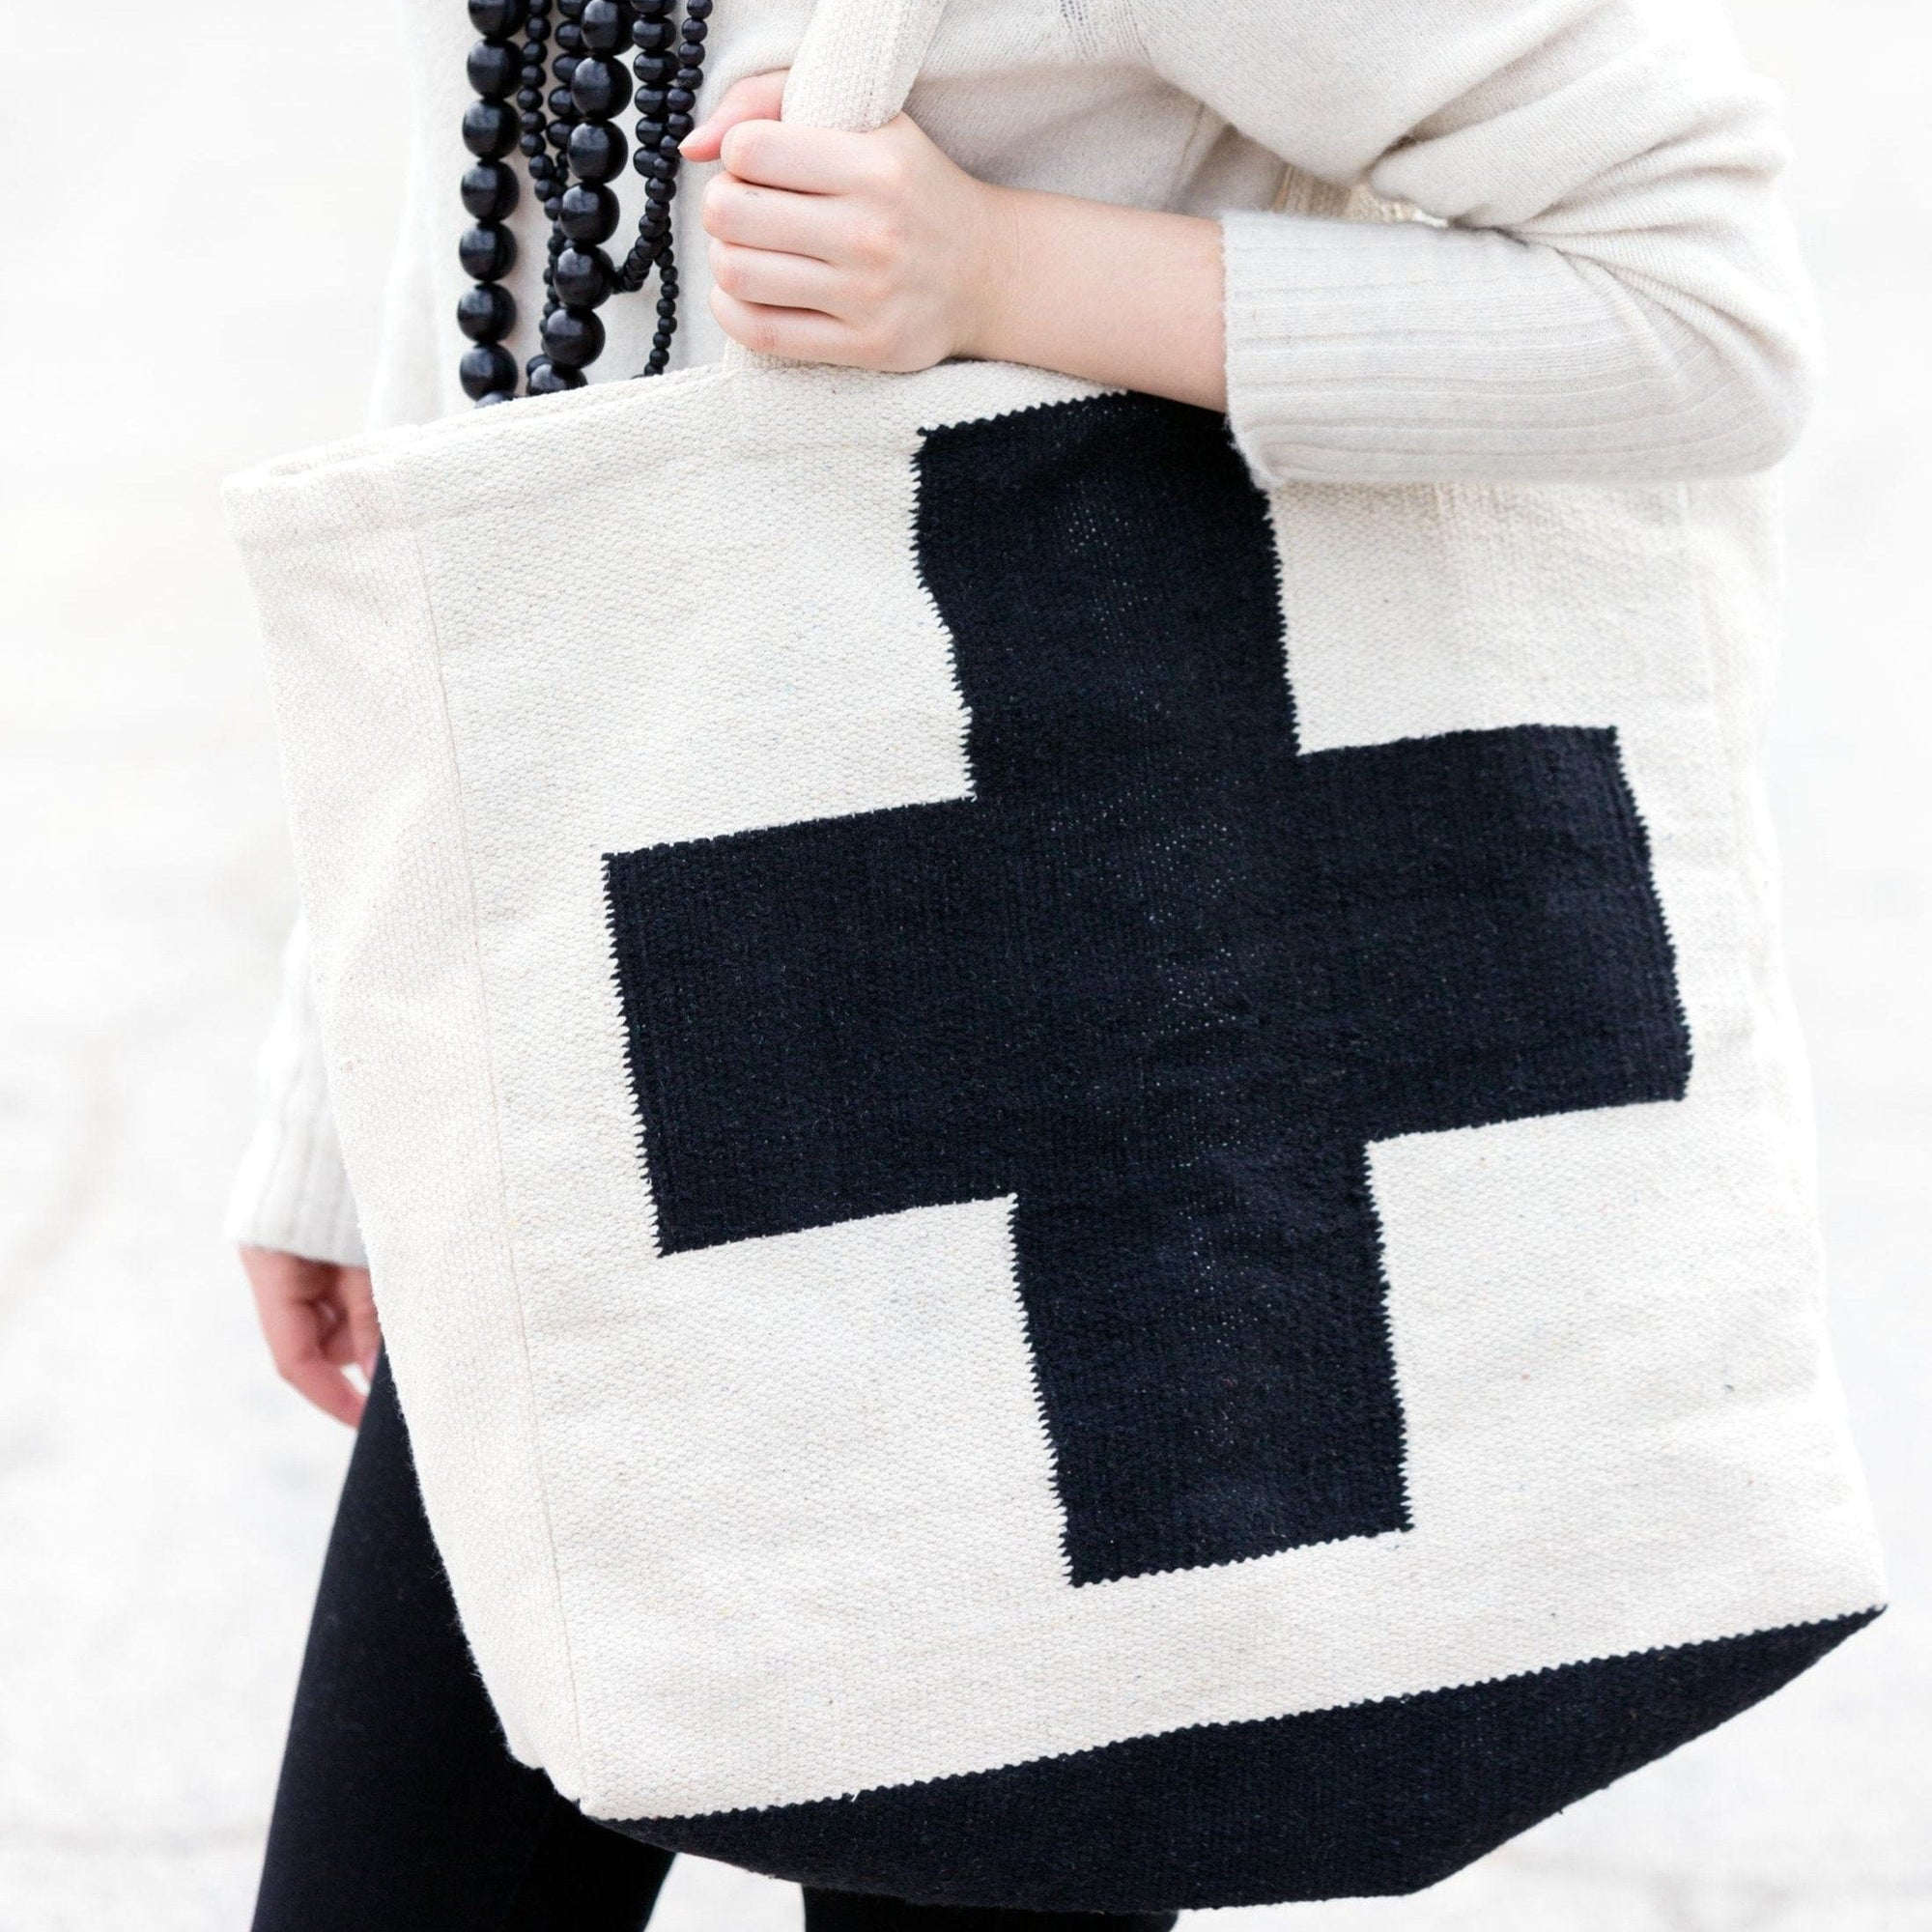 Black and White Cross Dhurrie Tote Bag